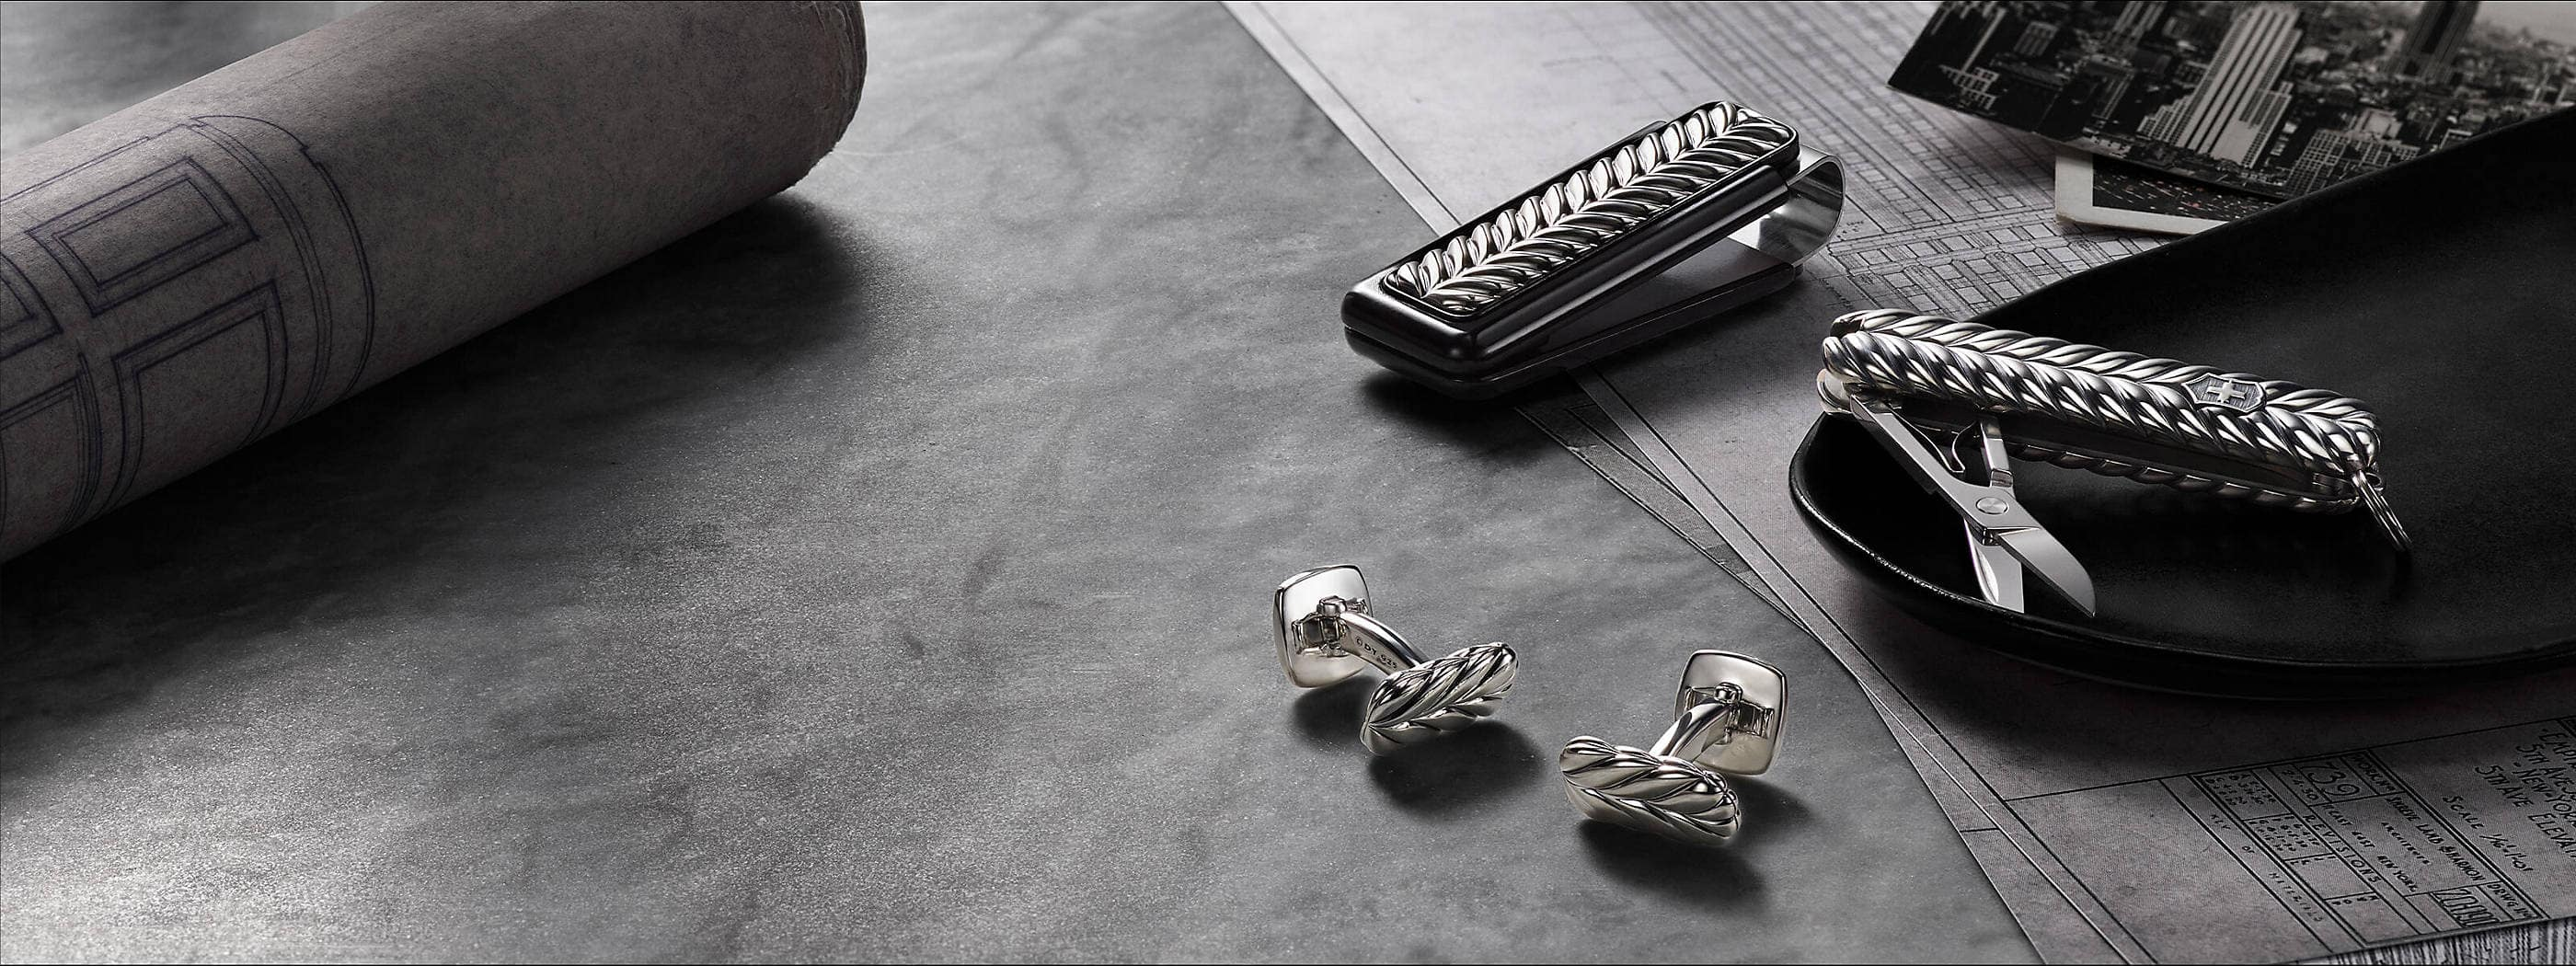 A color photo shows a pair of David Yurman men's cufflinks scattered on a grey marble surface next to a black tray holding a Swiss Army knife with the scissors shown and a money clip atop architectural blueprints. The accessories are crafted from sterling silver and are part of the Chevron Collection. On the left is a rolled up architectural blueprint and on the very right is a black-and-white photograph of a skyscraper.